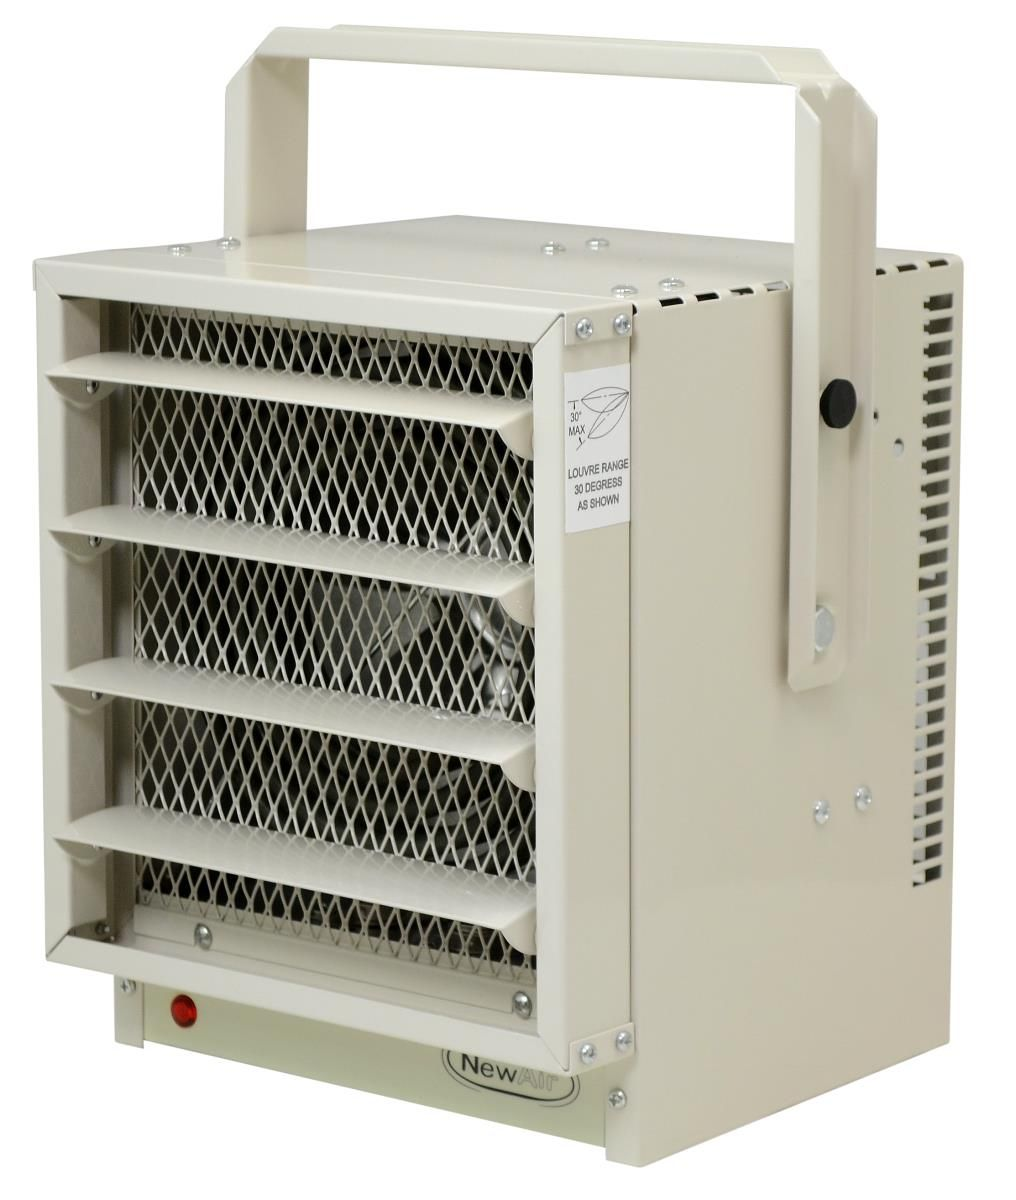 Image Of Electric Heater For Basement 3 Options Heating Your Patton Space Wiring Diagram Heaters Comfort Cove Off